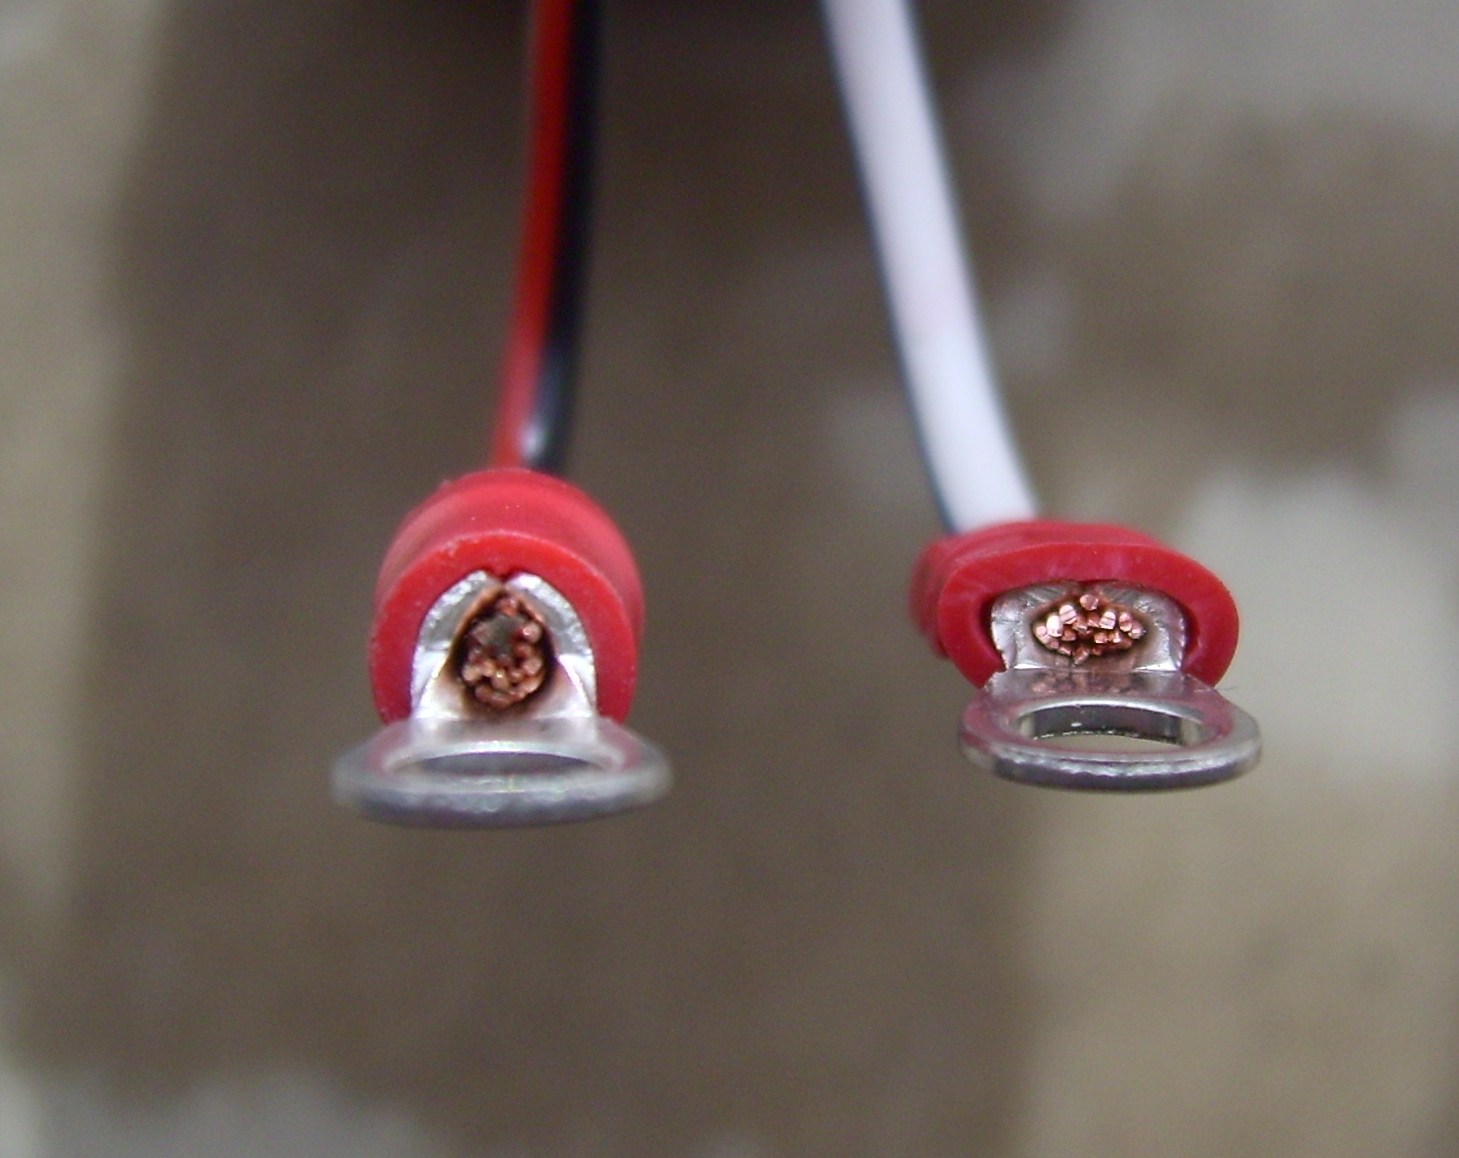 hight resolution of close up of two ring tongue terminals